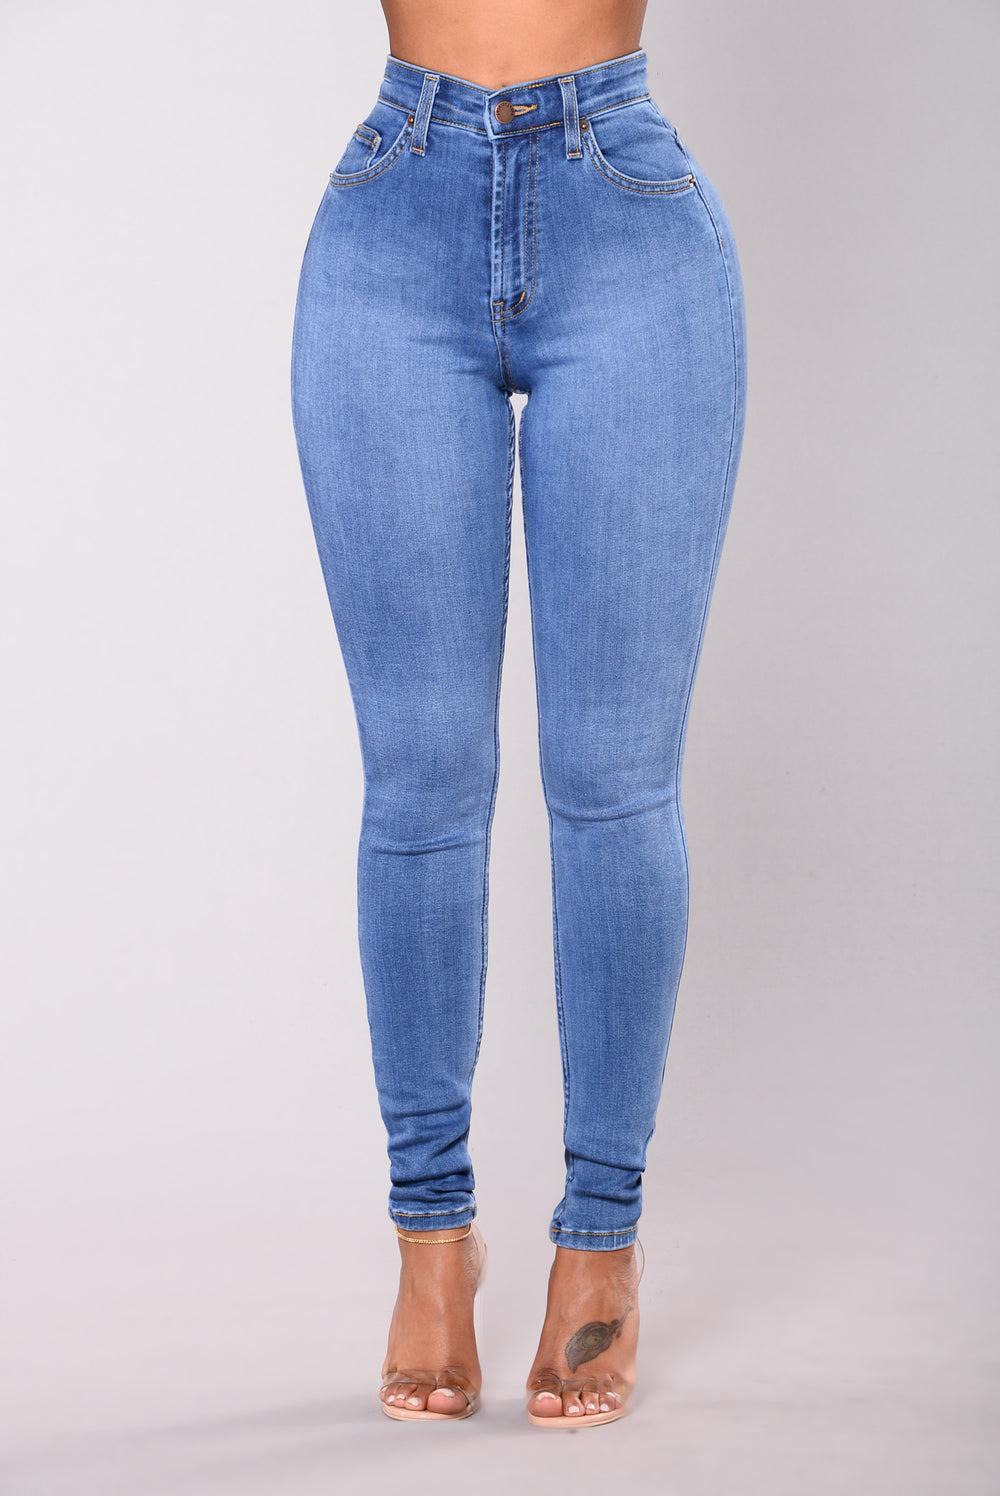 Why classic jeans are always blue 82